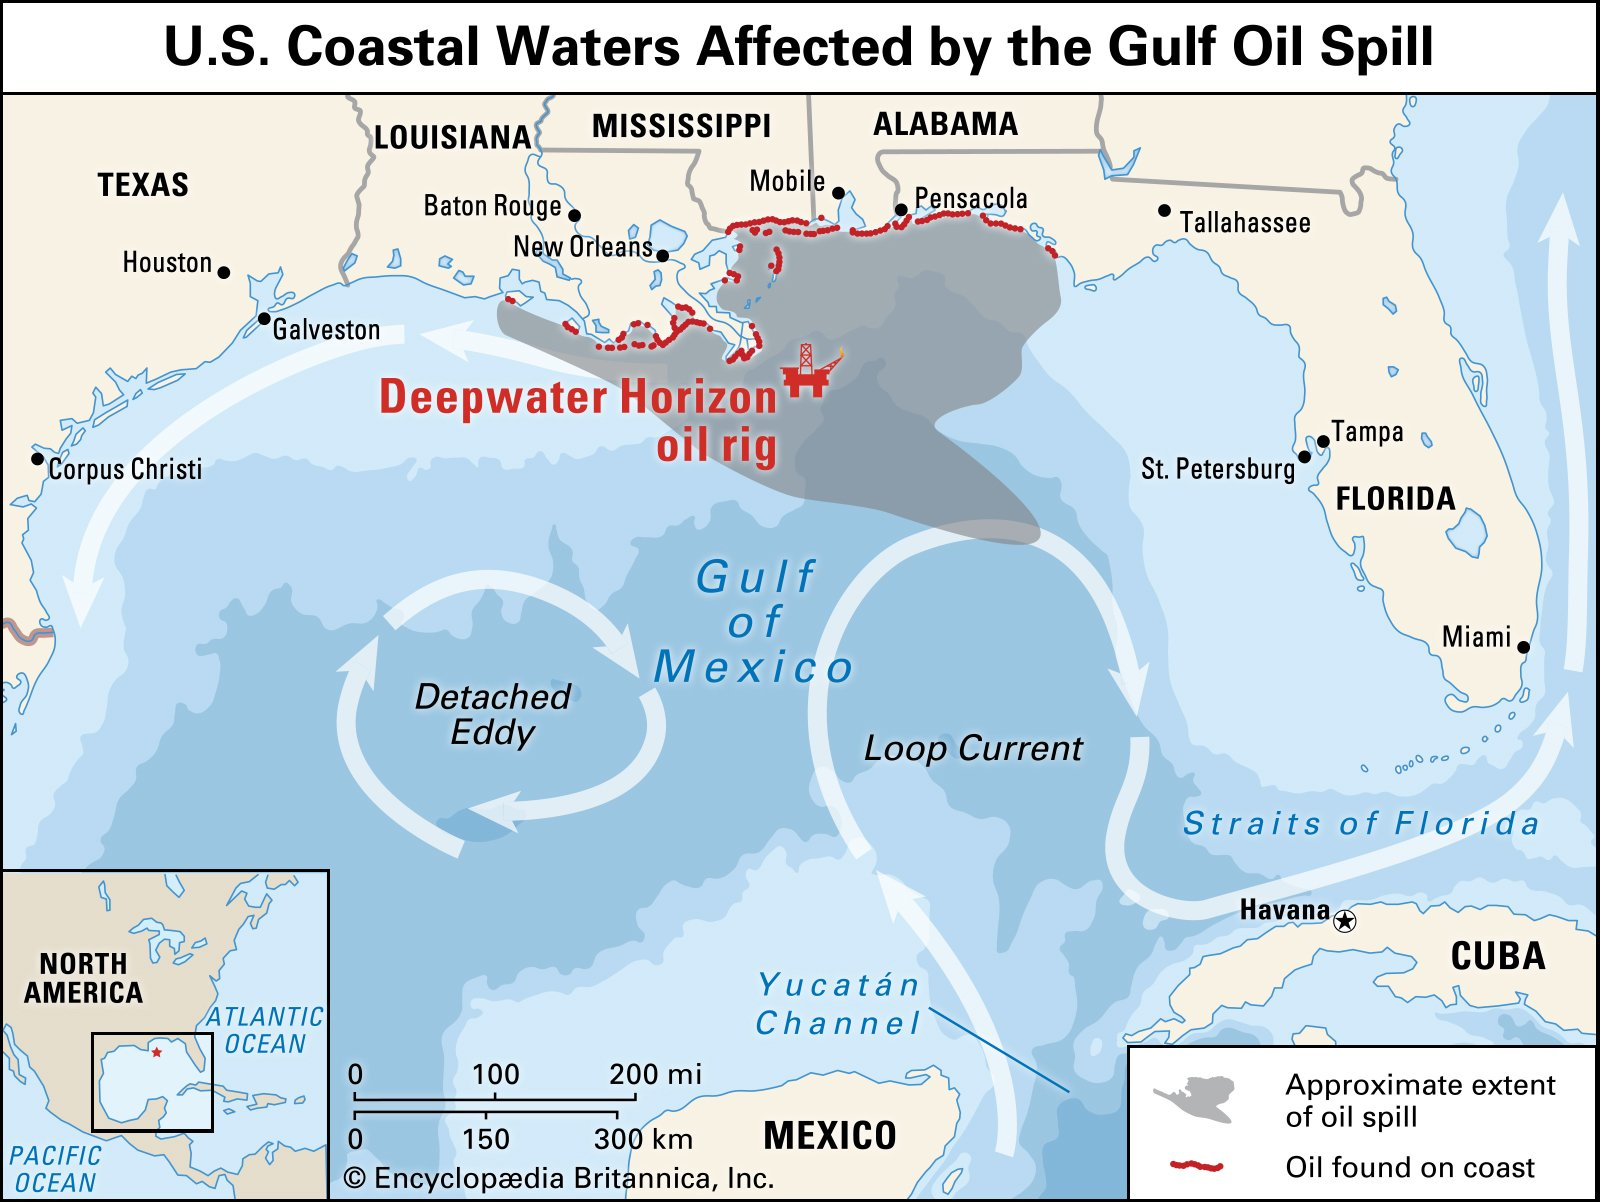 the gulf oil spill essay Below is an essay on bp gulf of mexico oil spill from anti essays, your source for research papers, essays, and term paper examples the largest accidental marine oil spill in human history happened april 20, 2010, in the gulf of mexico.